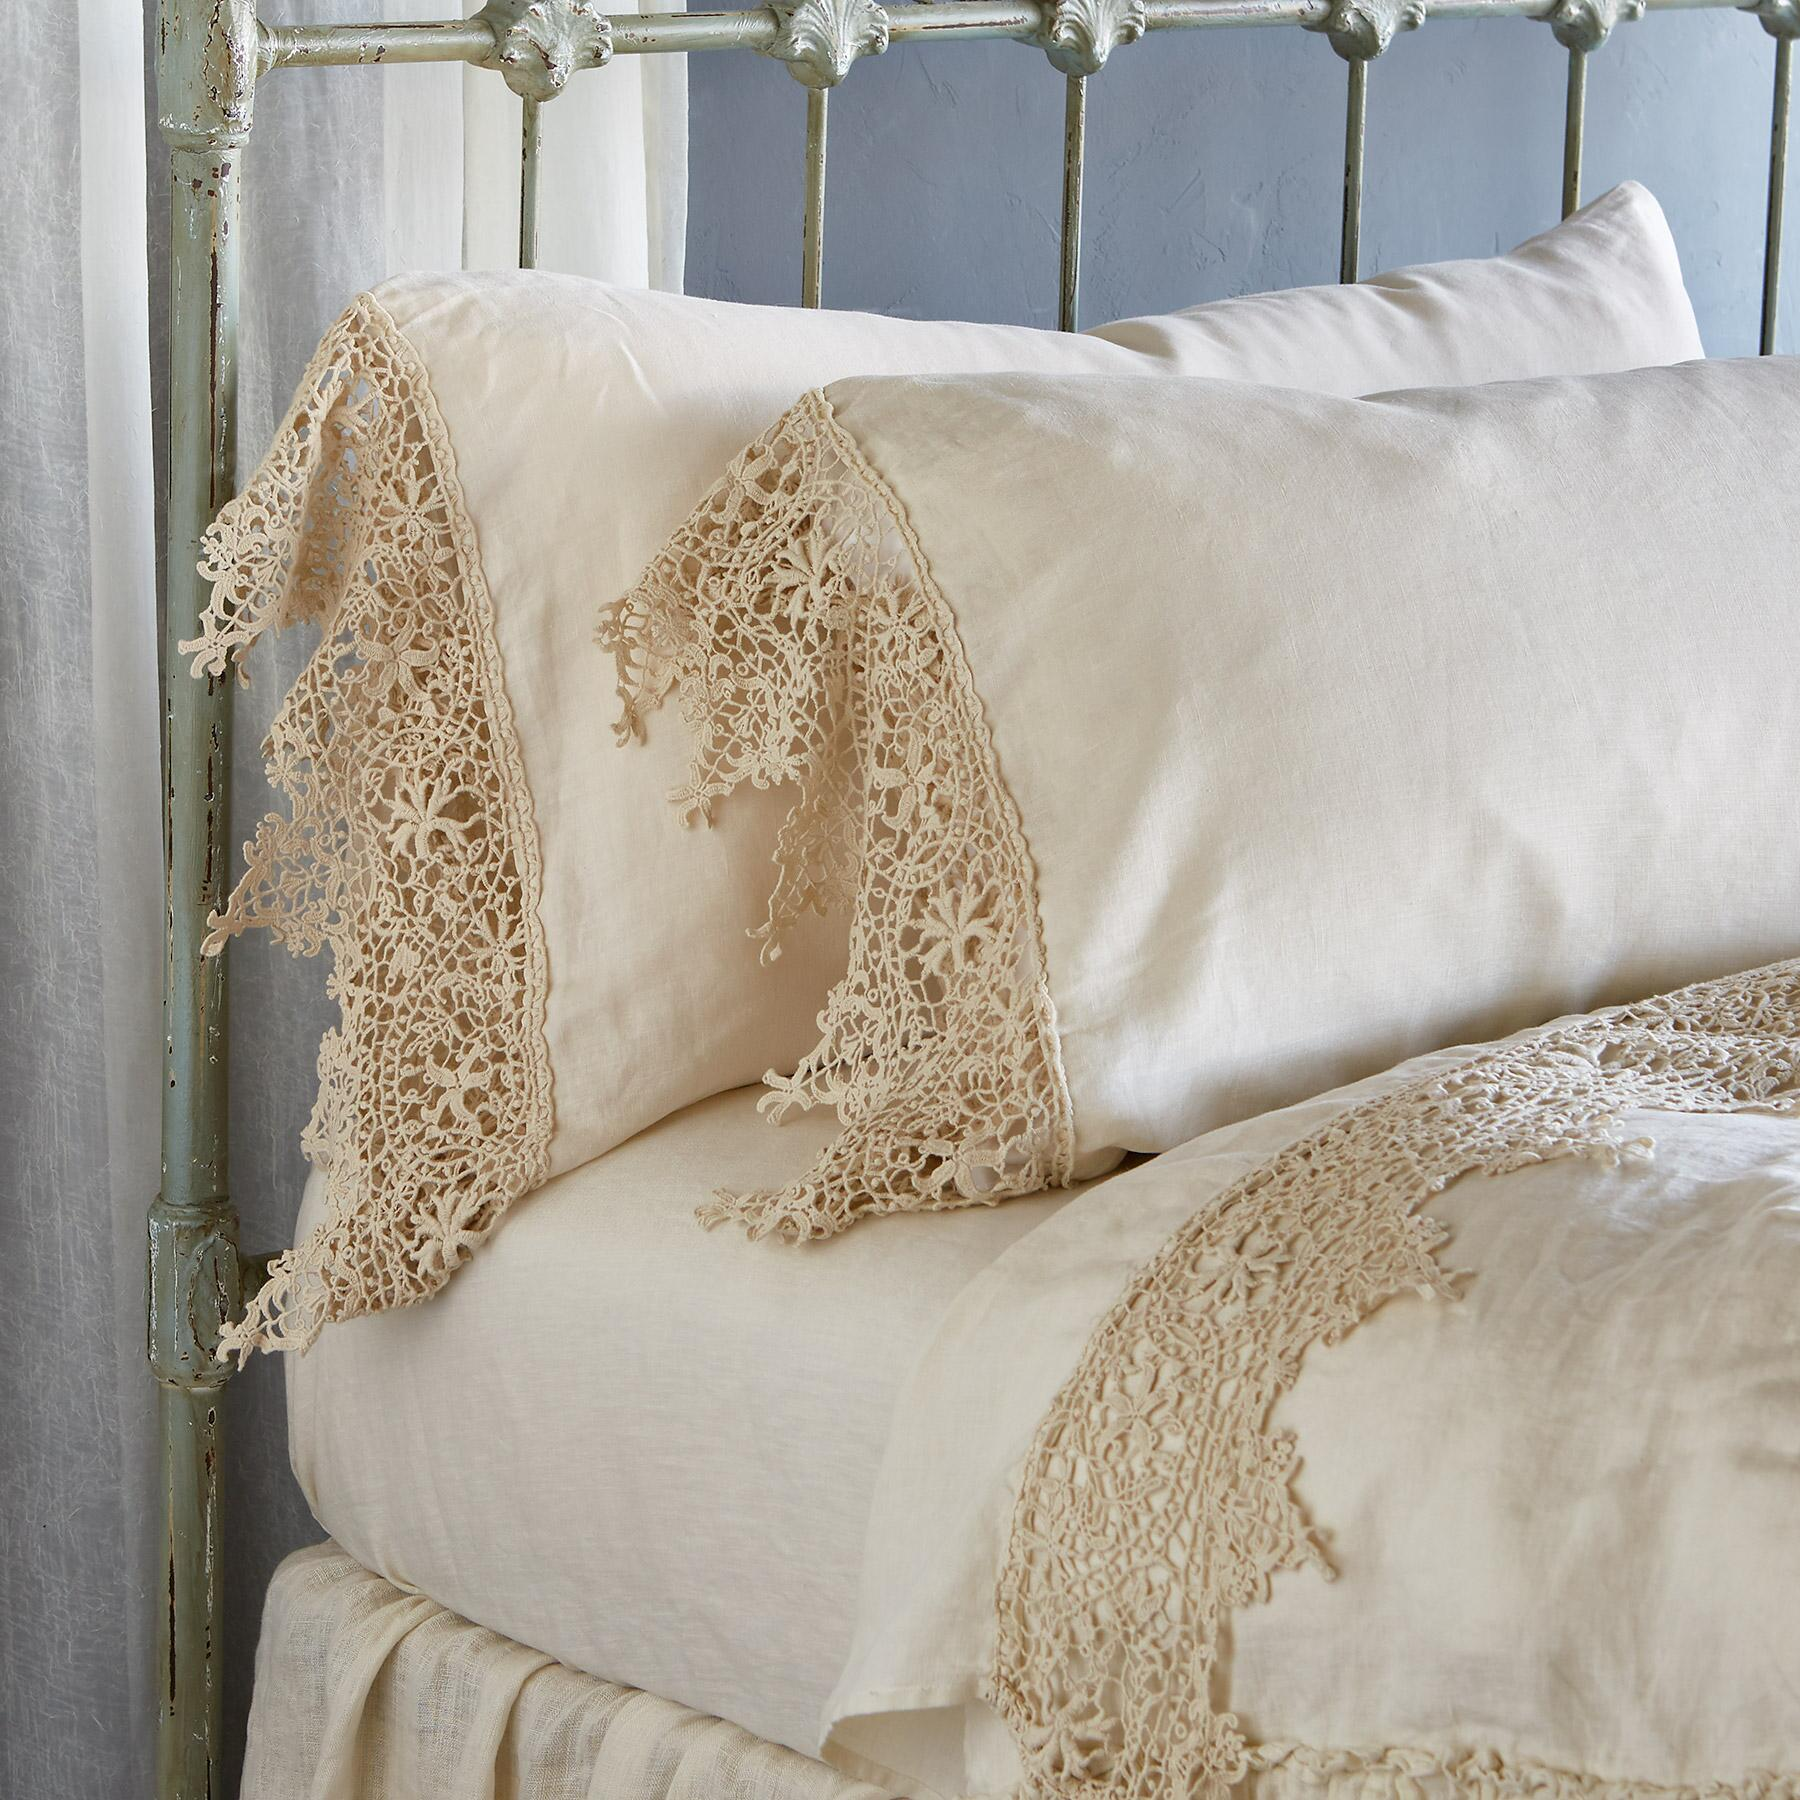 Gossamer Linen Lace Pillowcase: View 1